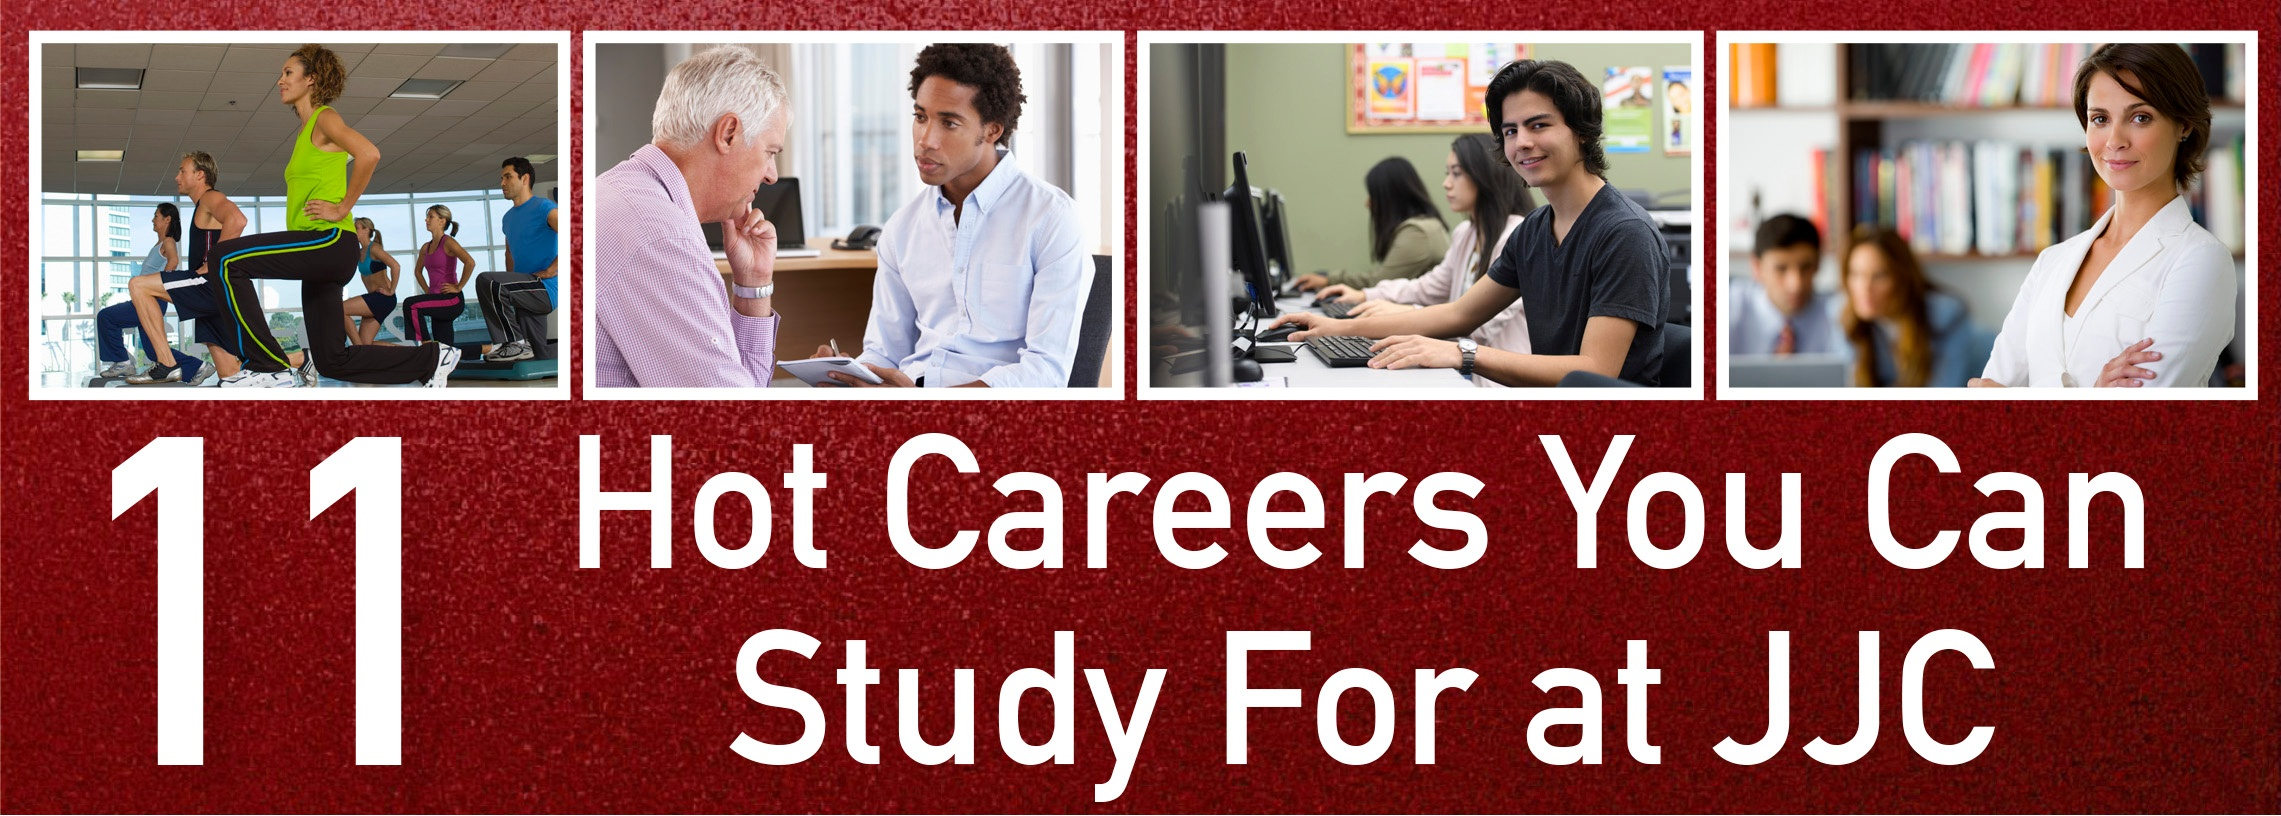 11 hot careers you can study for at jjc joliet junior college banner